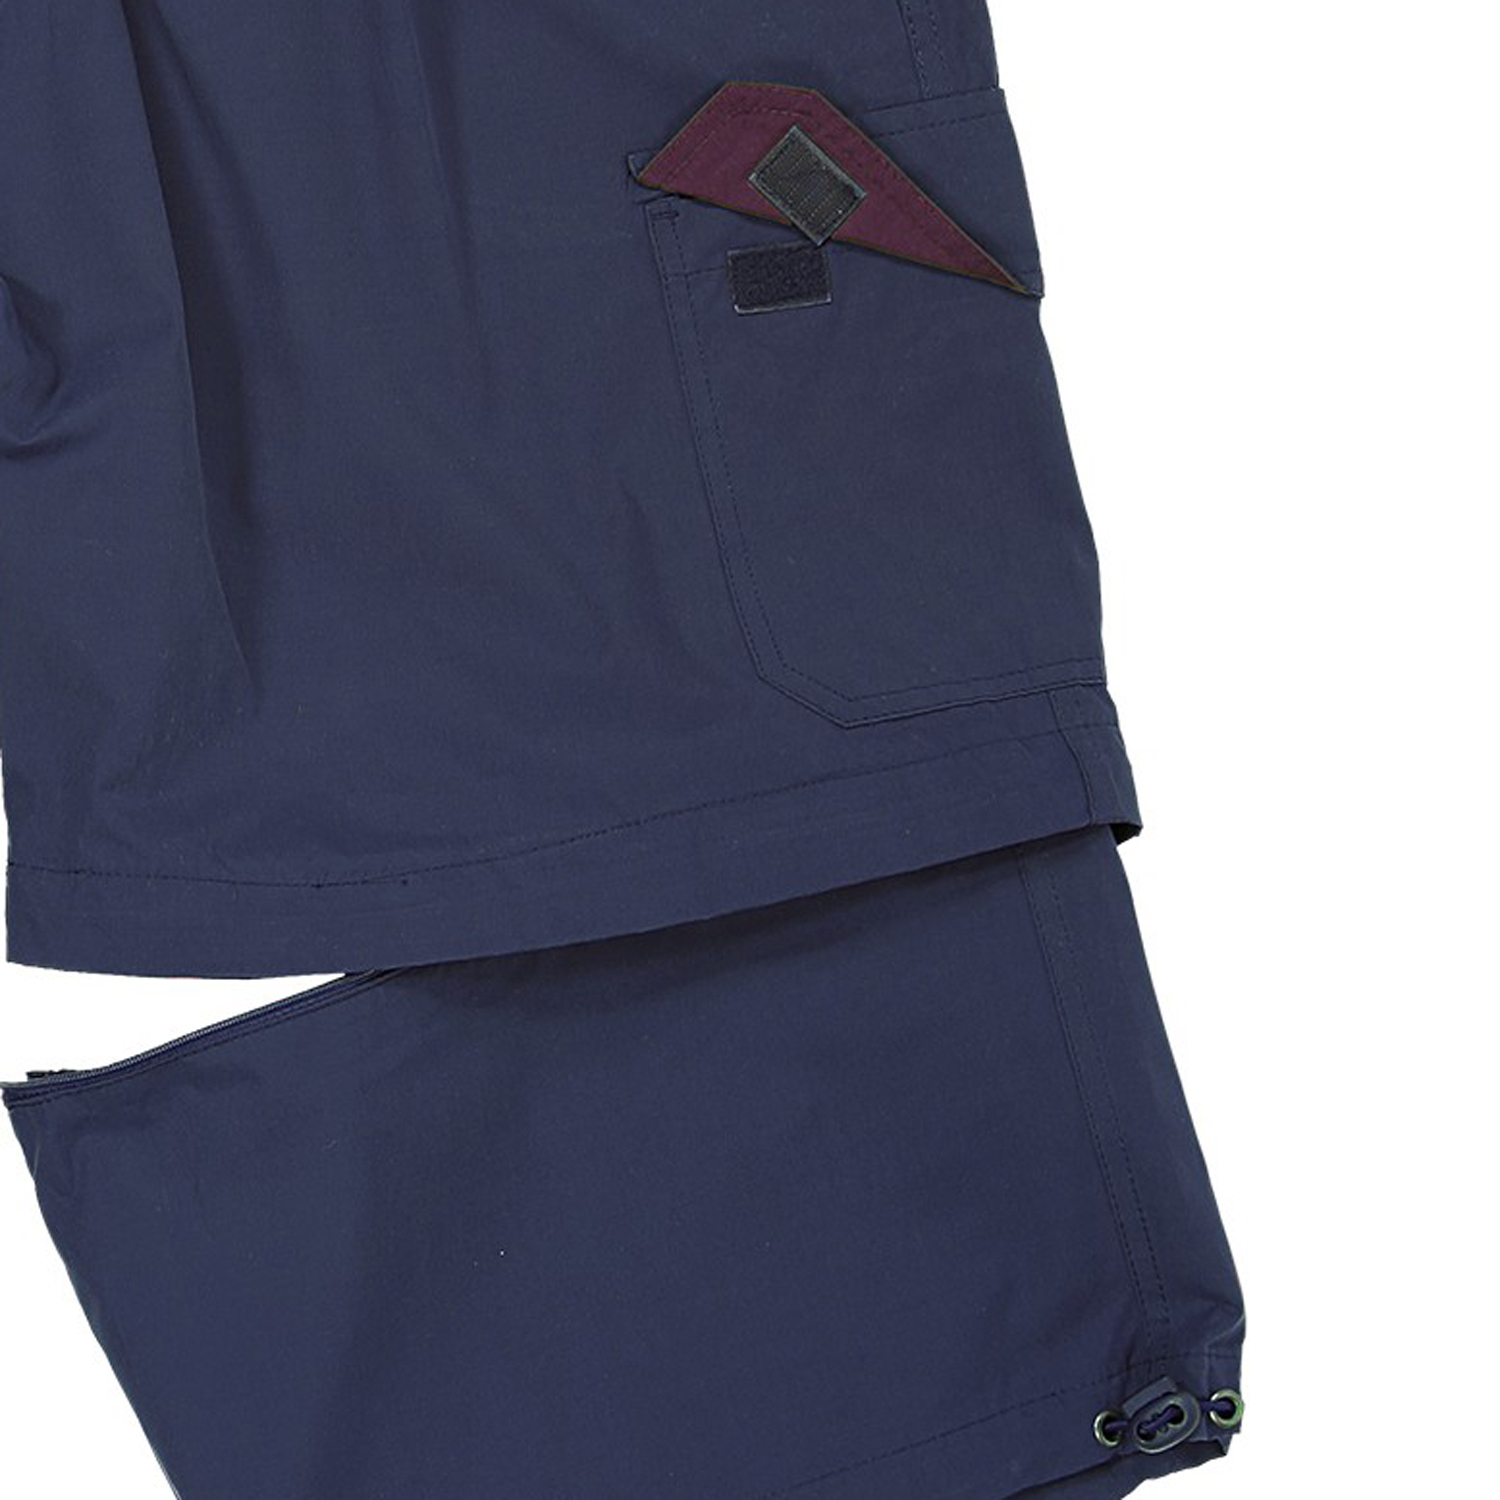 Detail Image to Zip-off-cargo-bermuda in navy by Abraxas in large sizes up to 10XL